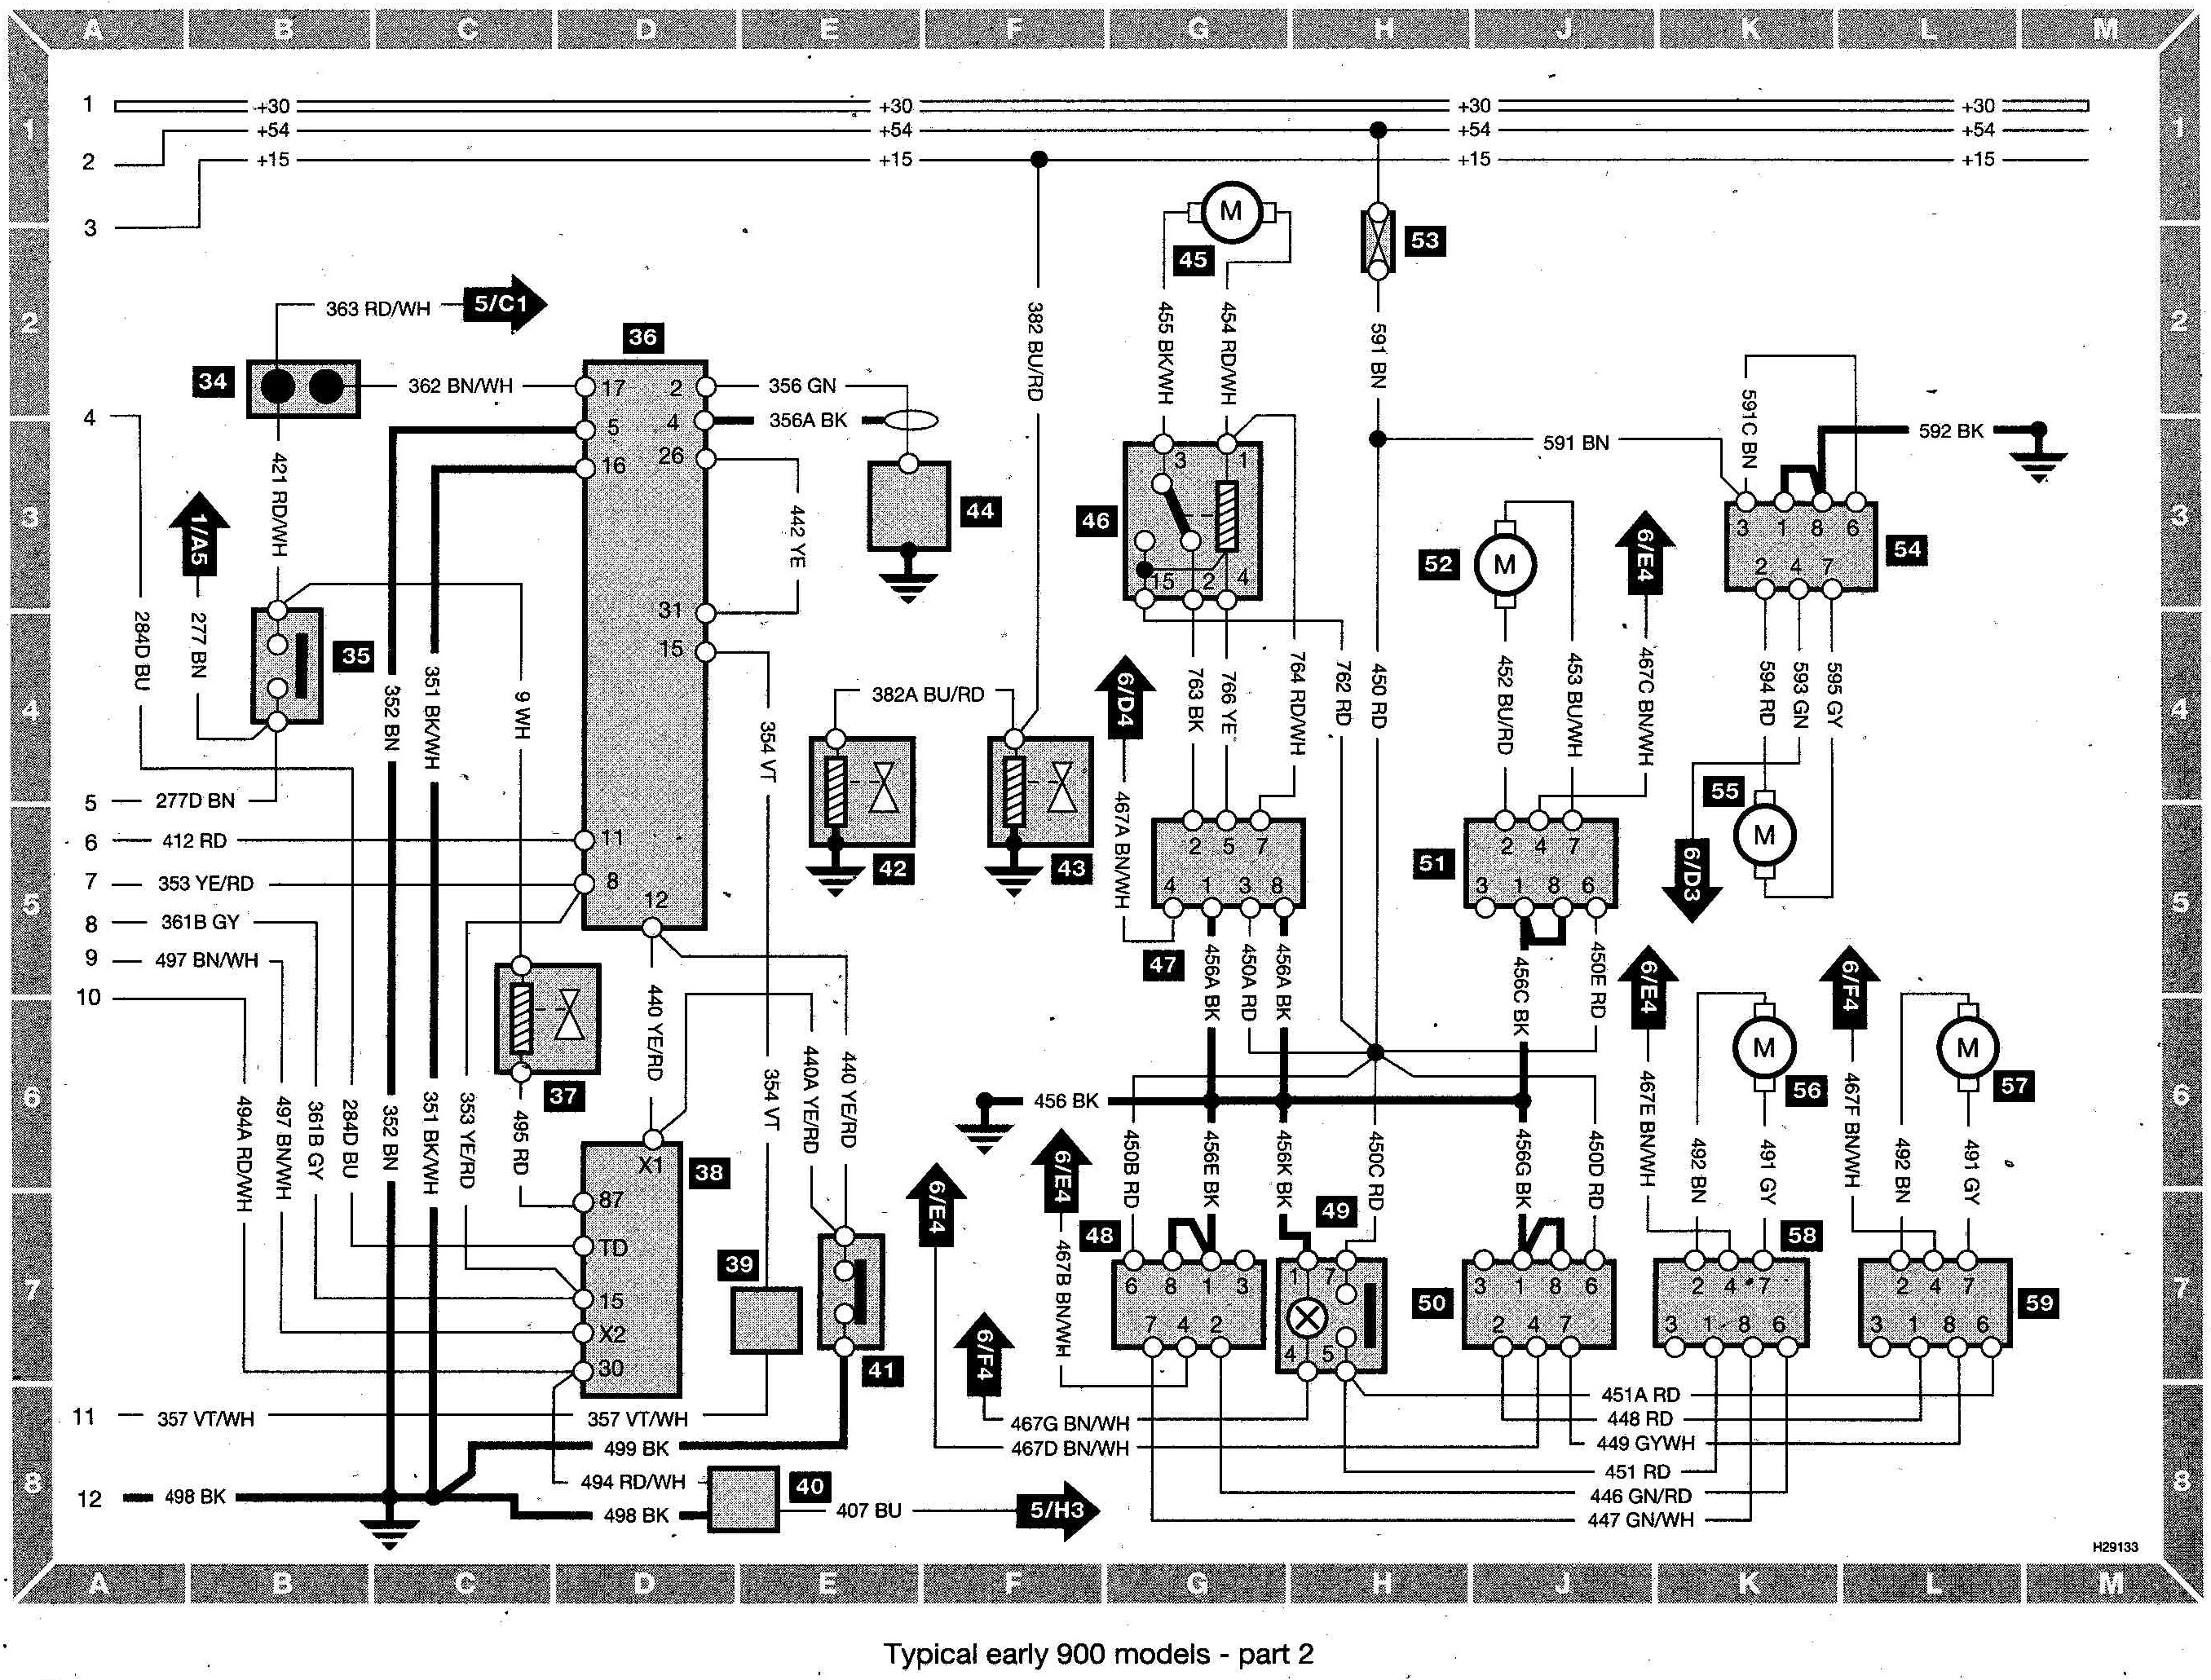 Saab 900 Wiring diagram (early models) part 2 towbar wiring diagram saab wiring diagrams instruction saab 9-3 tow bar wiring diagram at bakdesigns.co